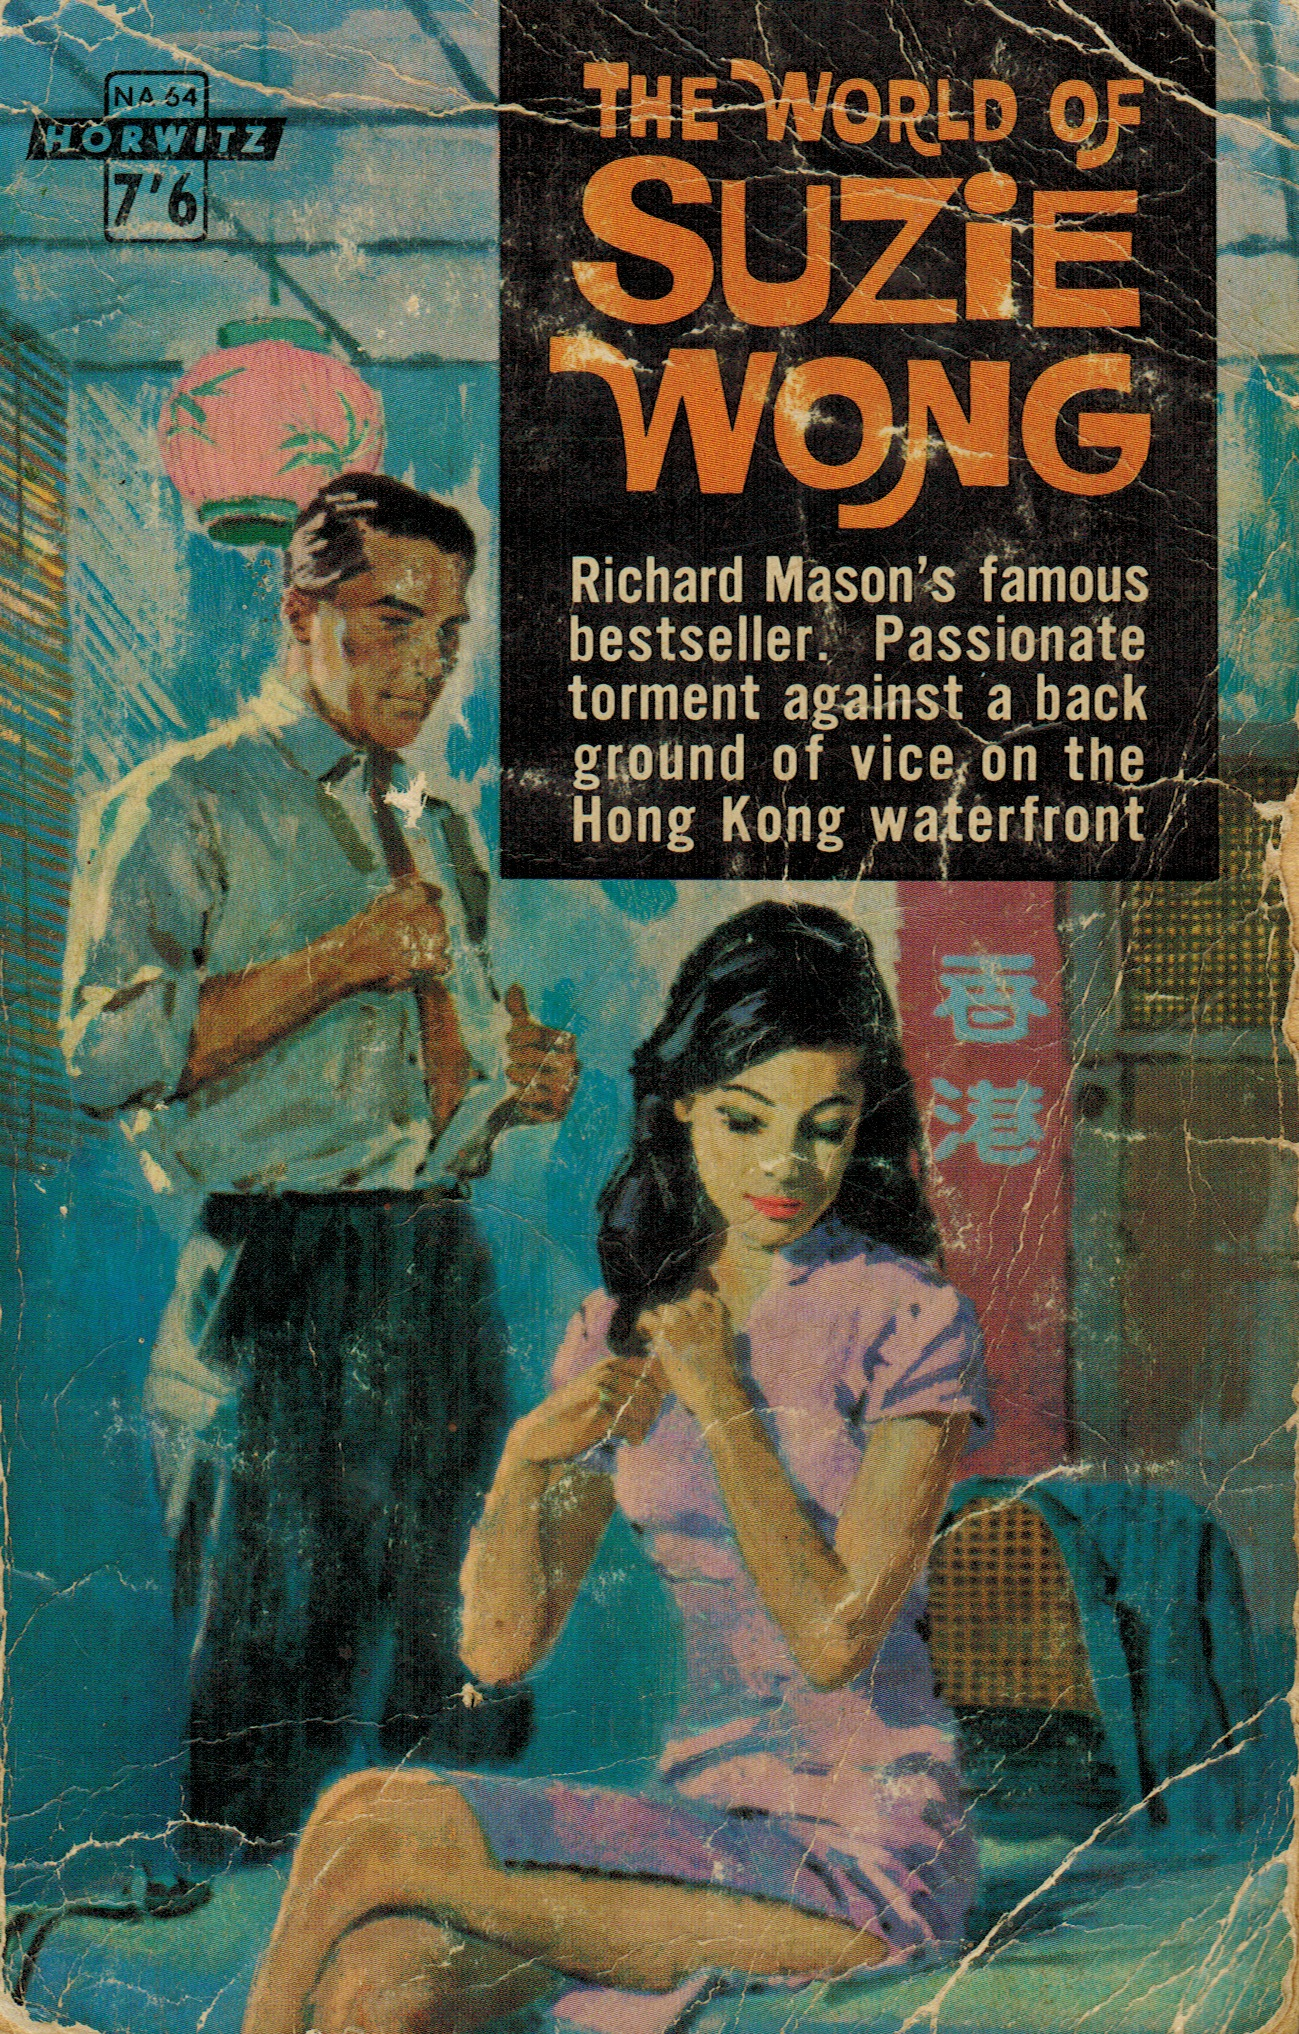 The World of Suzie Wong, Horwitz 1963